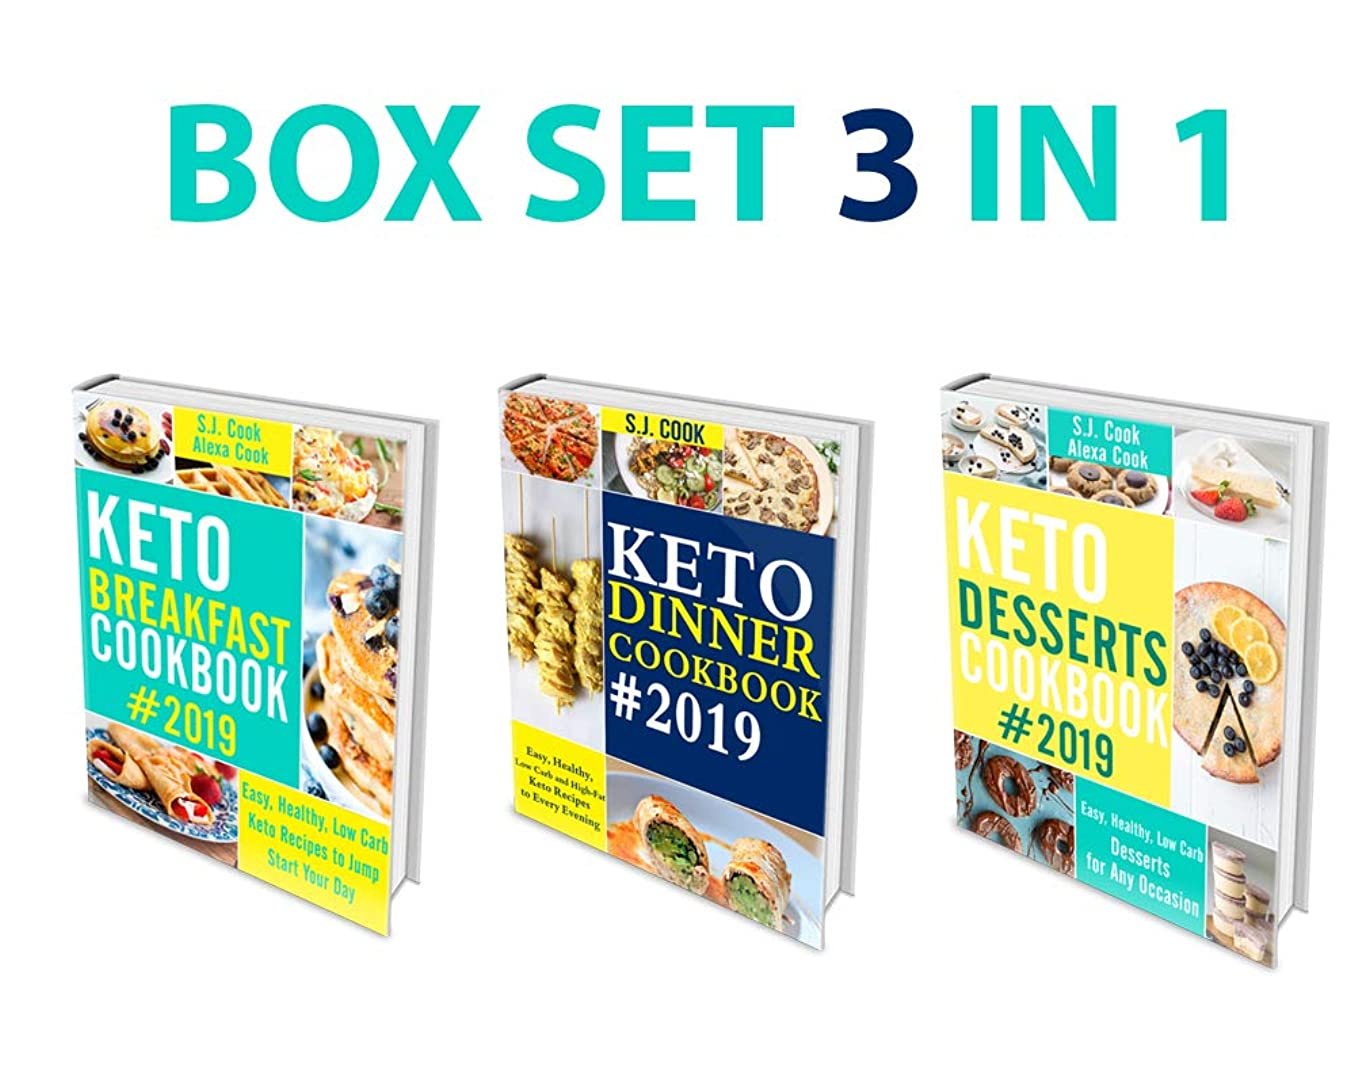 Keto Diet Cookbook: 3 in 1 Box Set - Keto Breakfast Cookbook, Keto Dinner Cookbook, Keto Desserts Cookbook ( Keto Baking Cookbook, Easy Recipes) (English Edition)